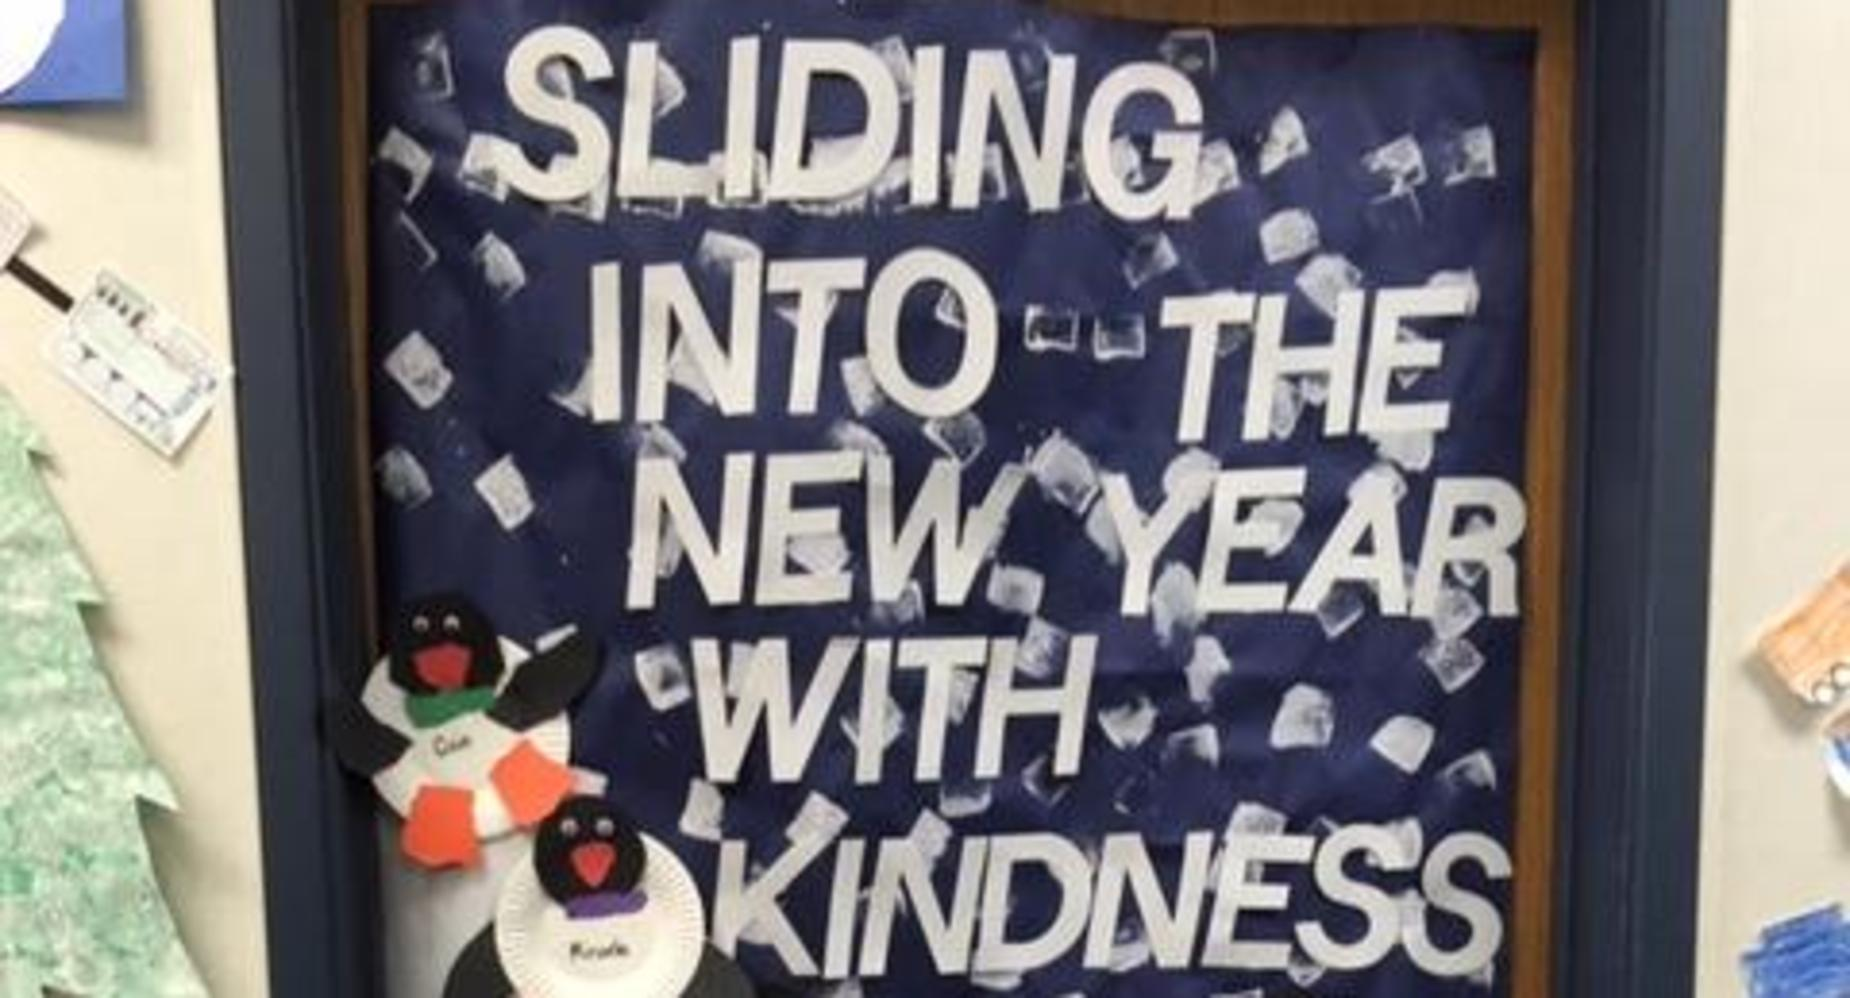 Sliding into the New Year with Kindness.